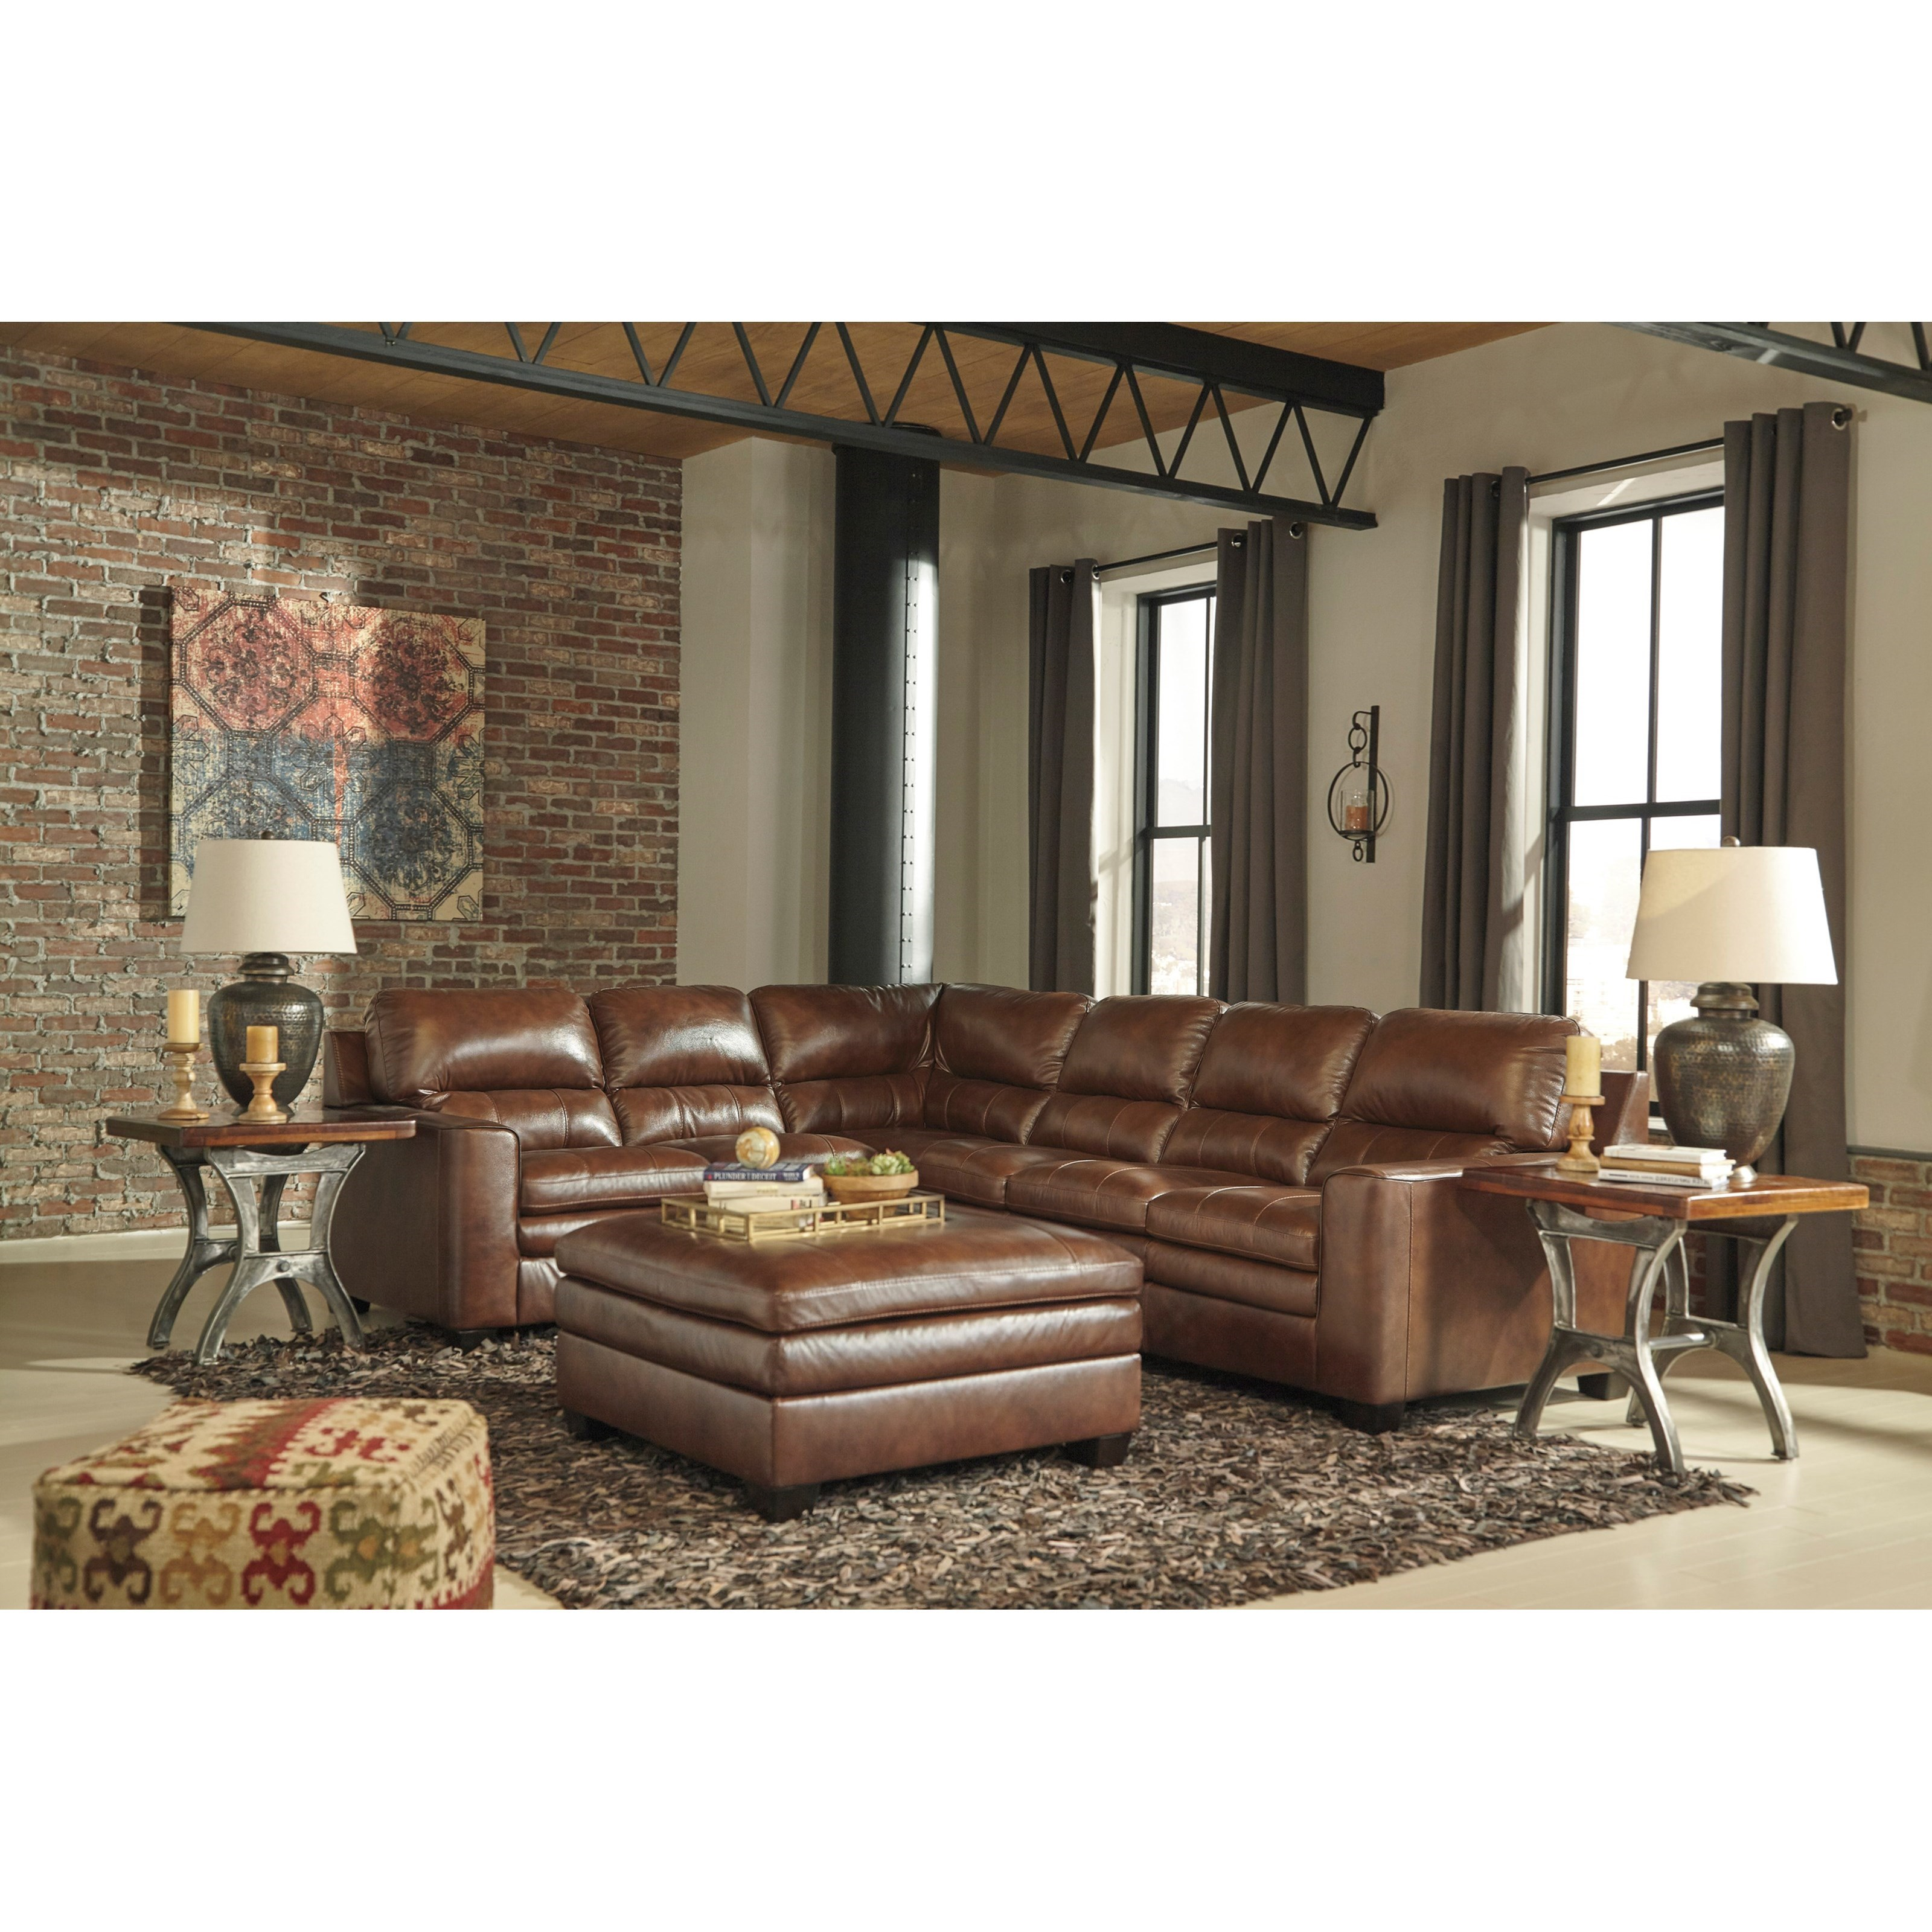 Signature Design By Ashley Gleason Stationary Living Room Group Furniture And Appliancemart